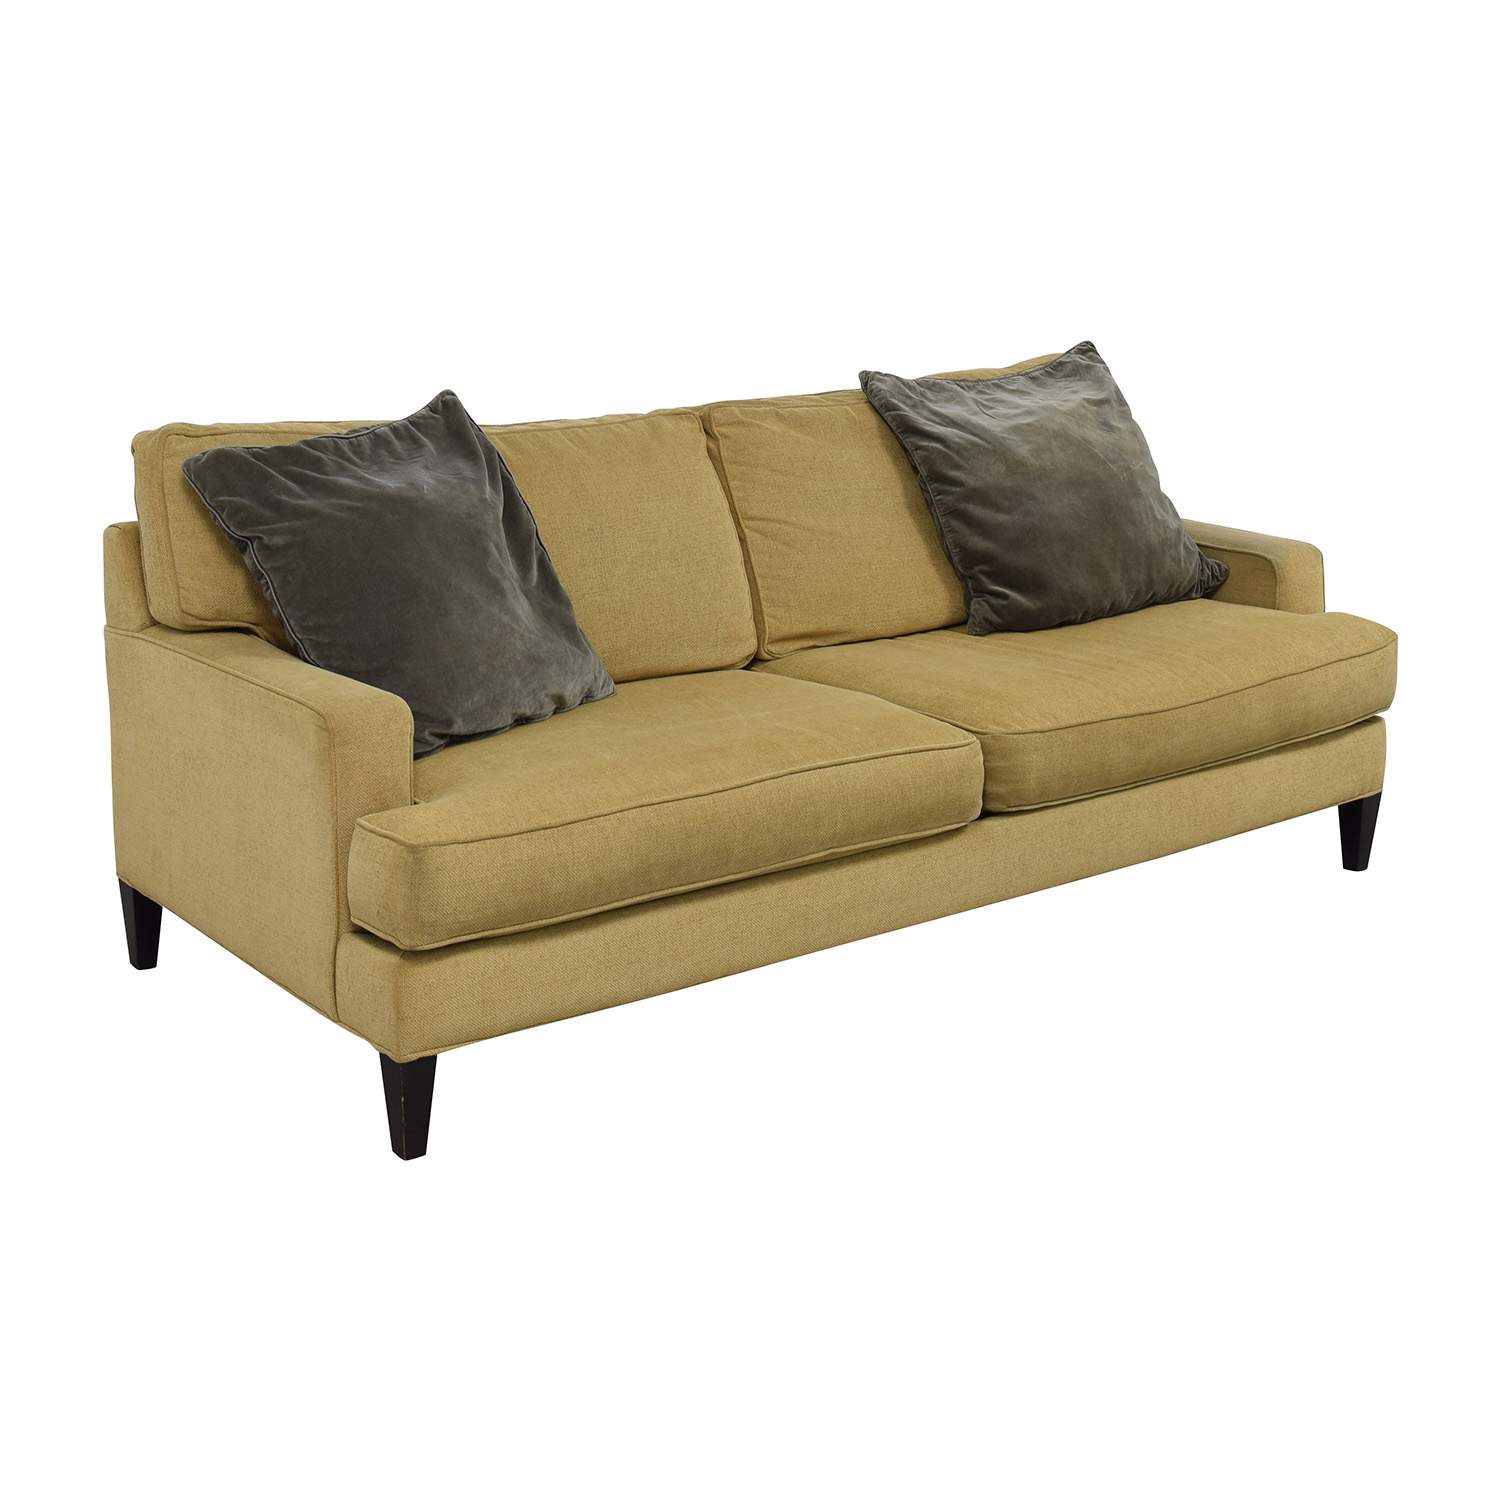 Room and Board Room & Board Beige Two Cushion Sofa Sofas